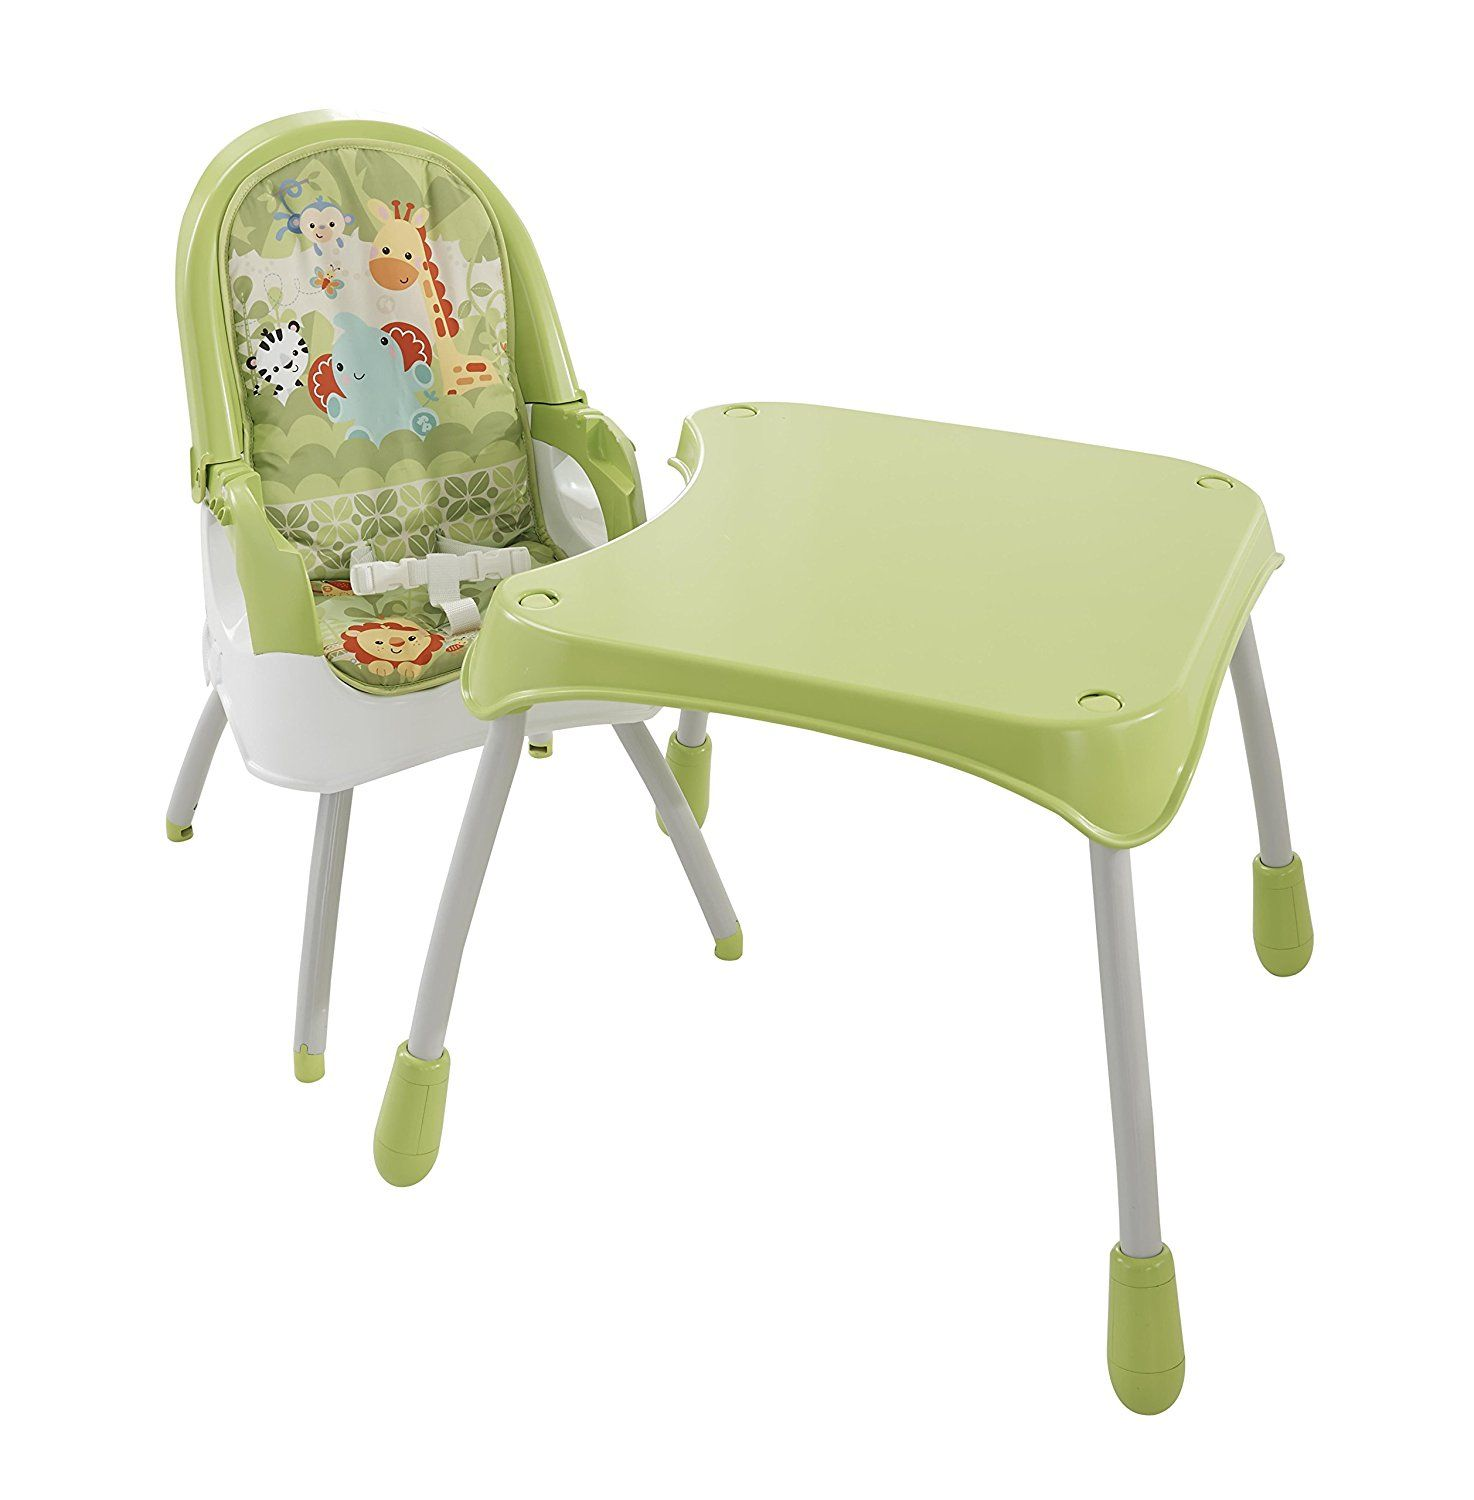 fisher price 4 in 1 high chair green best home and kitchen store